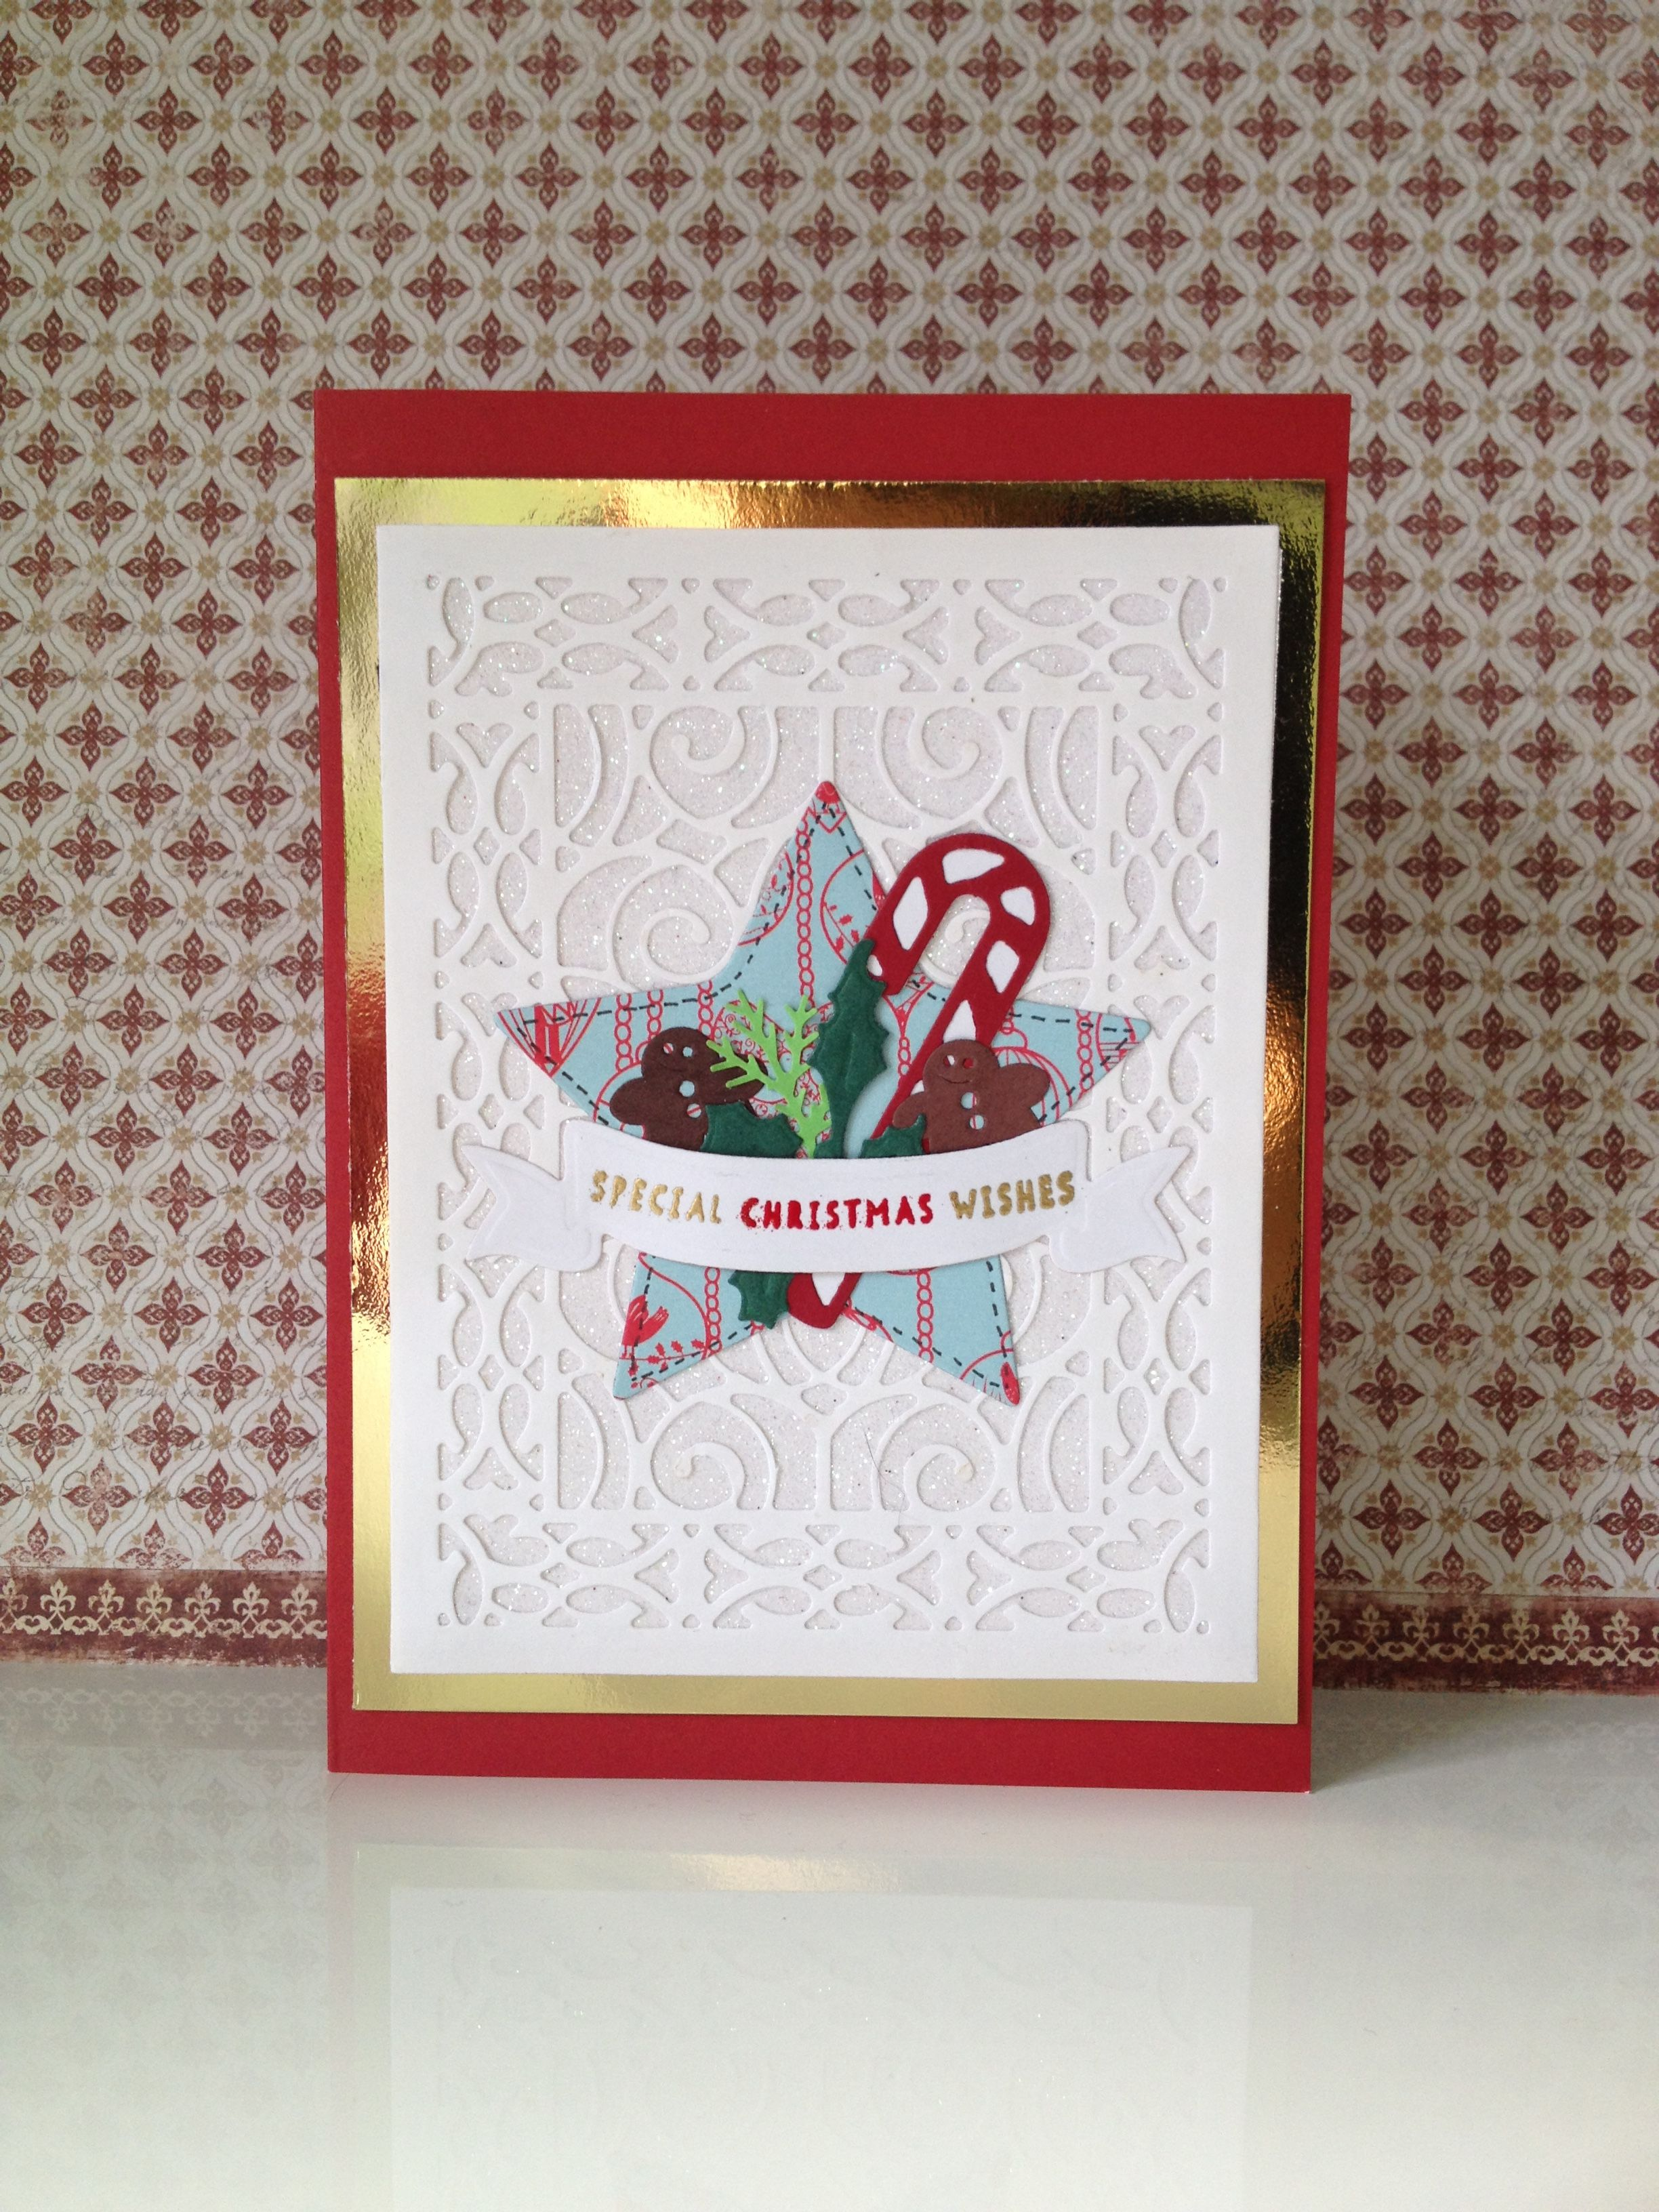 a little Christmas card I made last year. Made by Paper Alley. www.paperalley.co.uk